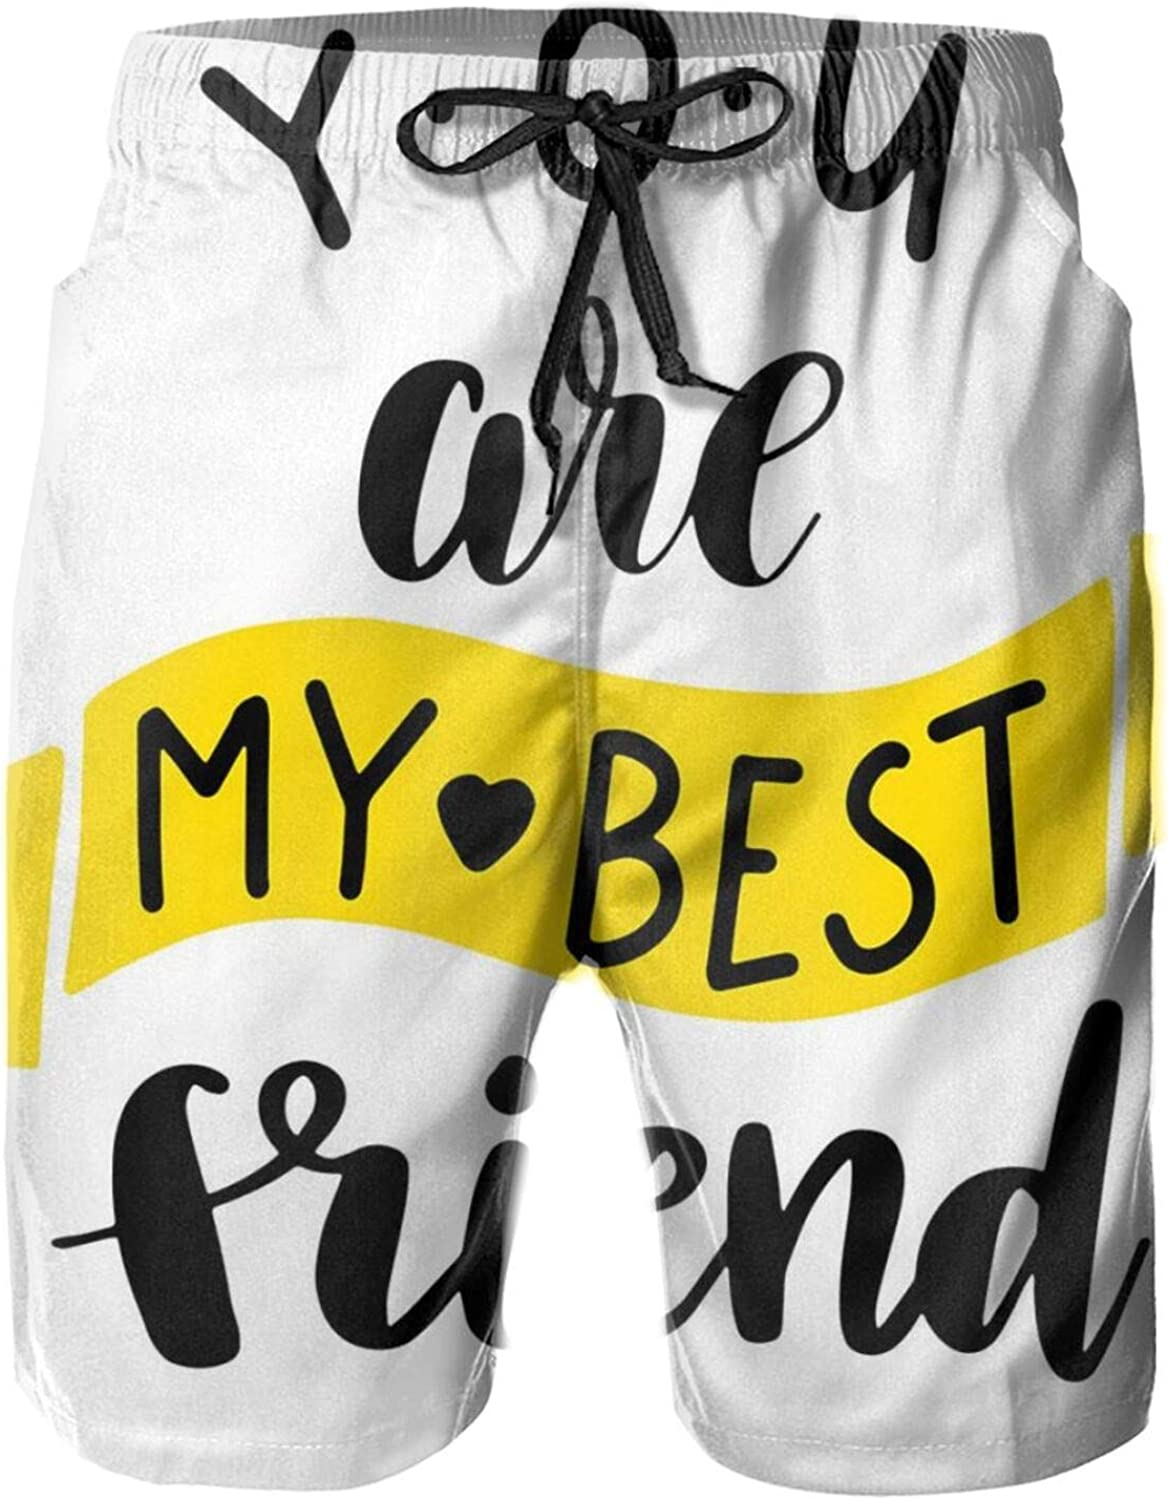 Monochrome You are My Best Friend Lettering On Plain Background Swimming Trunks for Men Beach Shorts Casual Style,XL